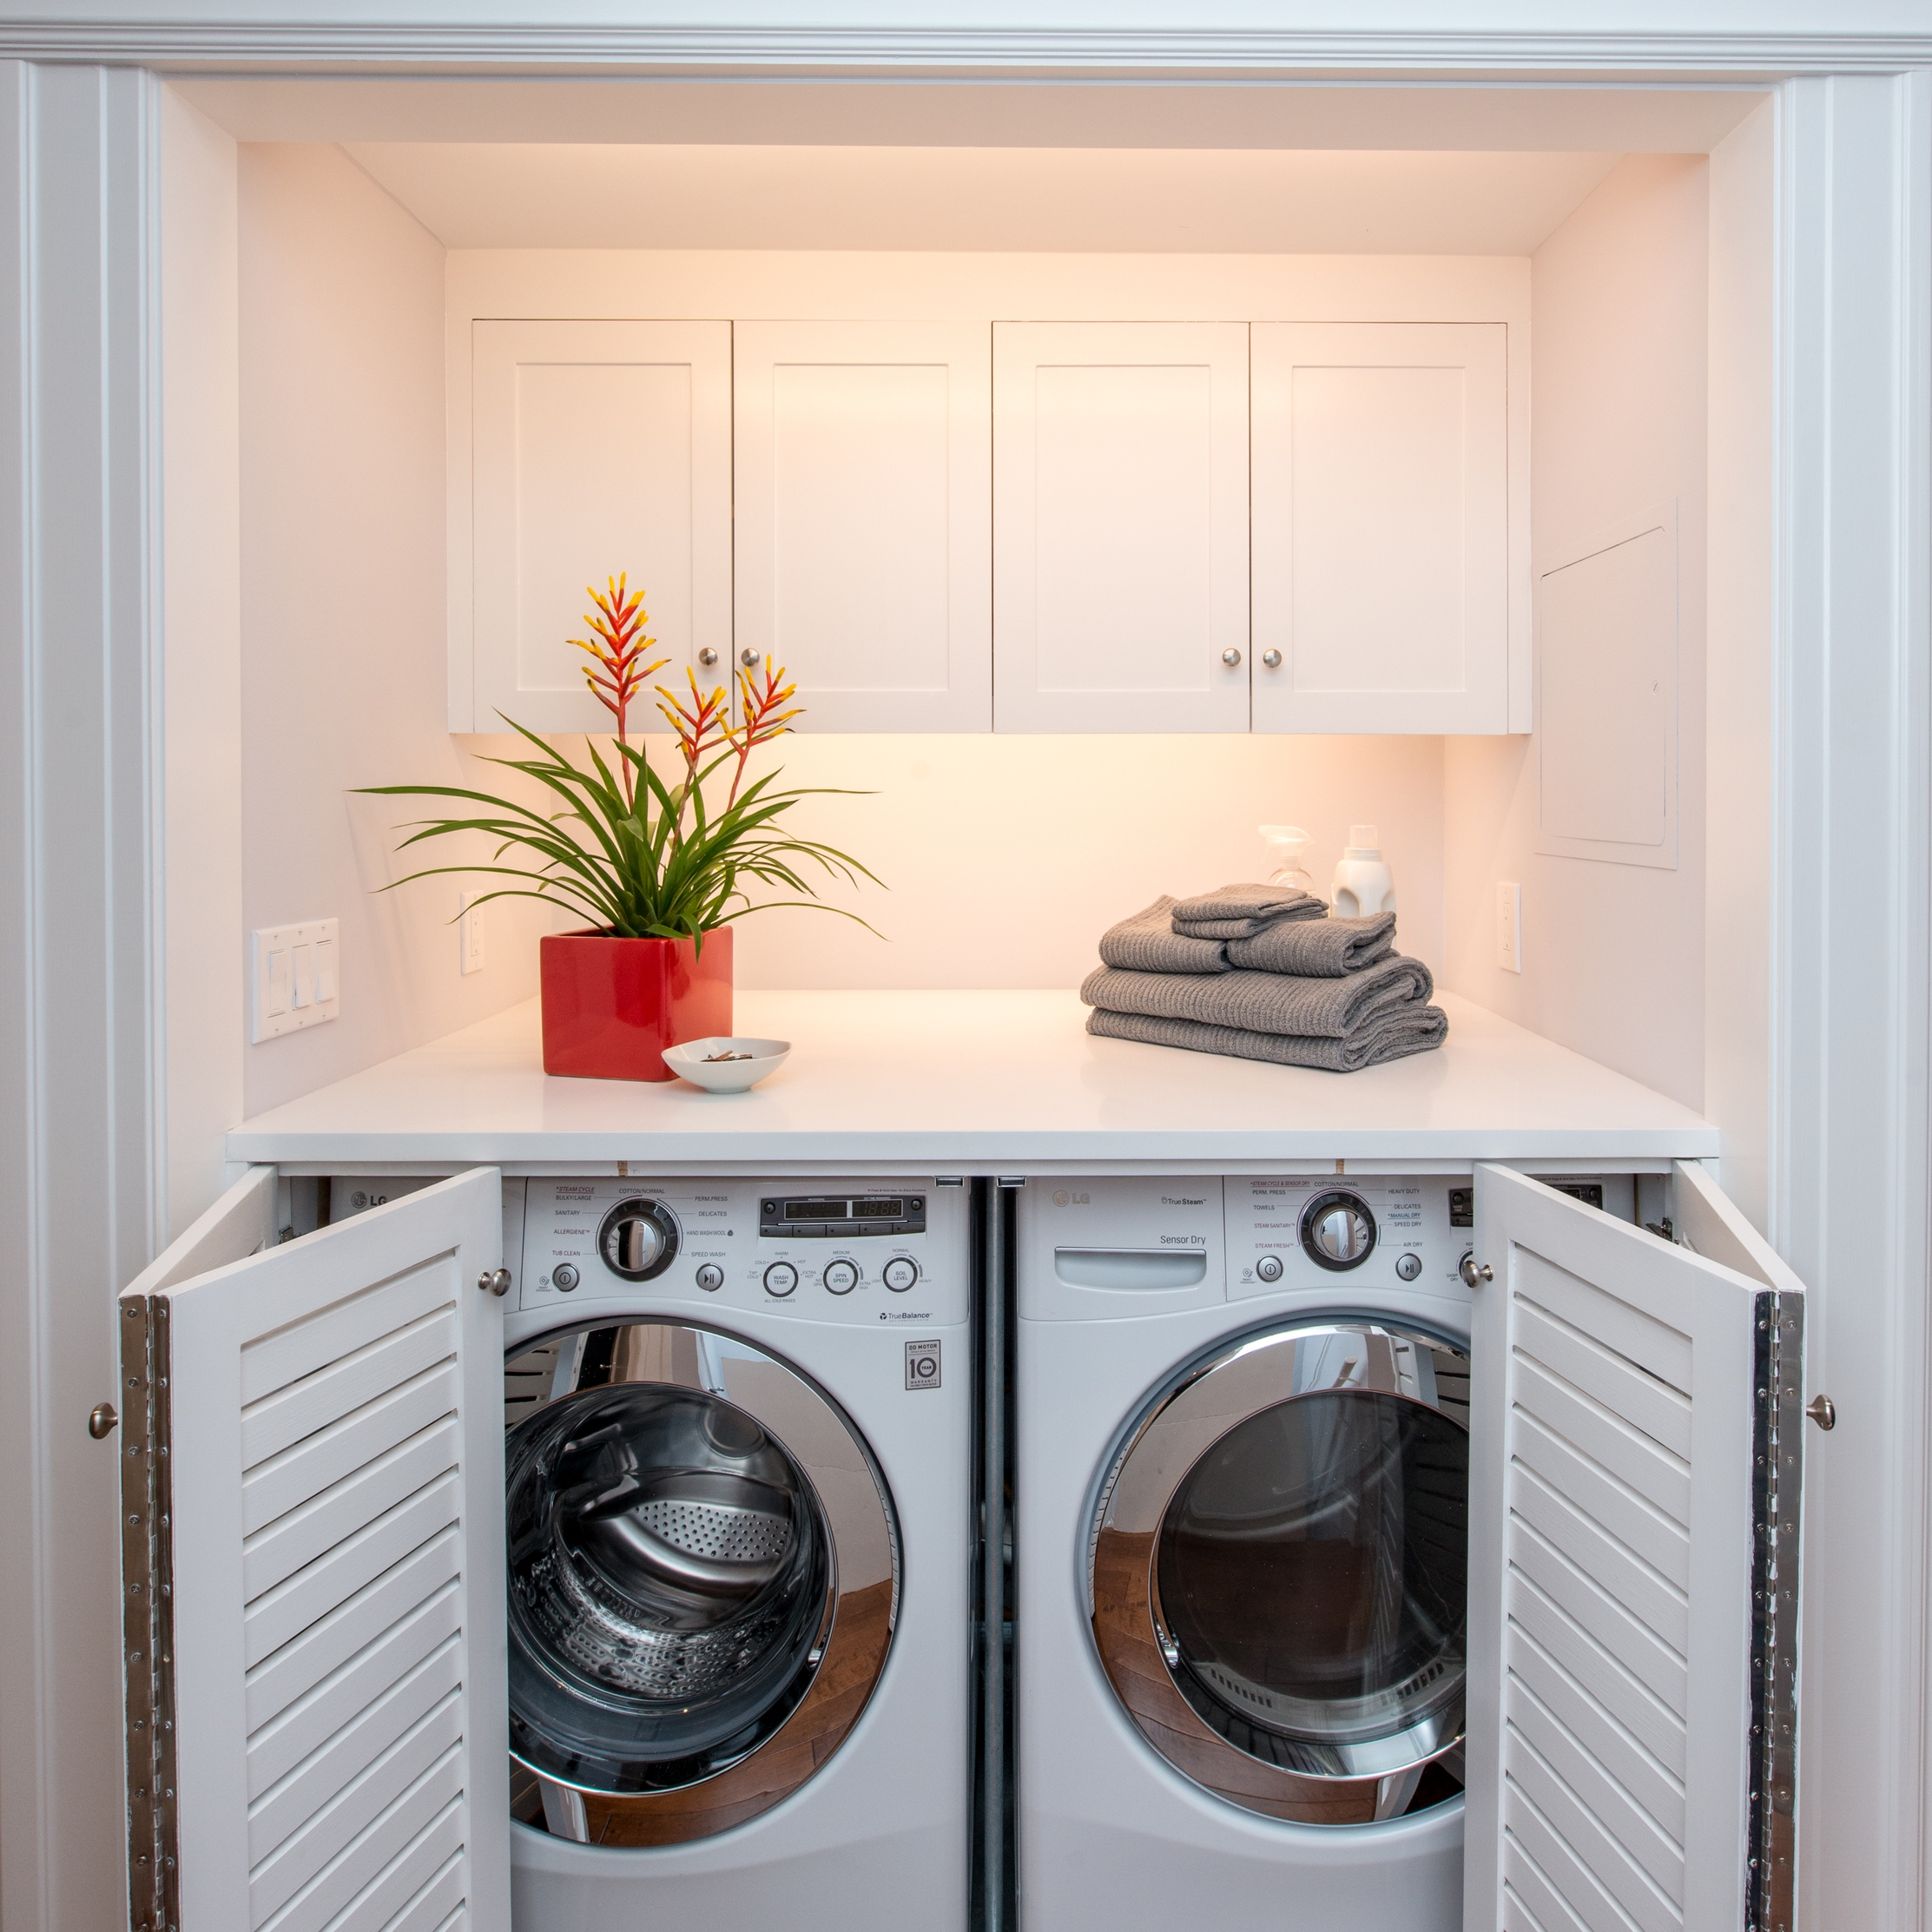 San Francisco Duboce Triangle Edwardian Laundry Nook   NARI Members involved in this project include     General Contractor: Jeff King & Company    Electrical Fixtures: Berkeley Lighting    Photography: Treve Johnson Photography